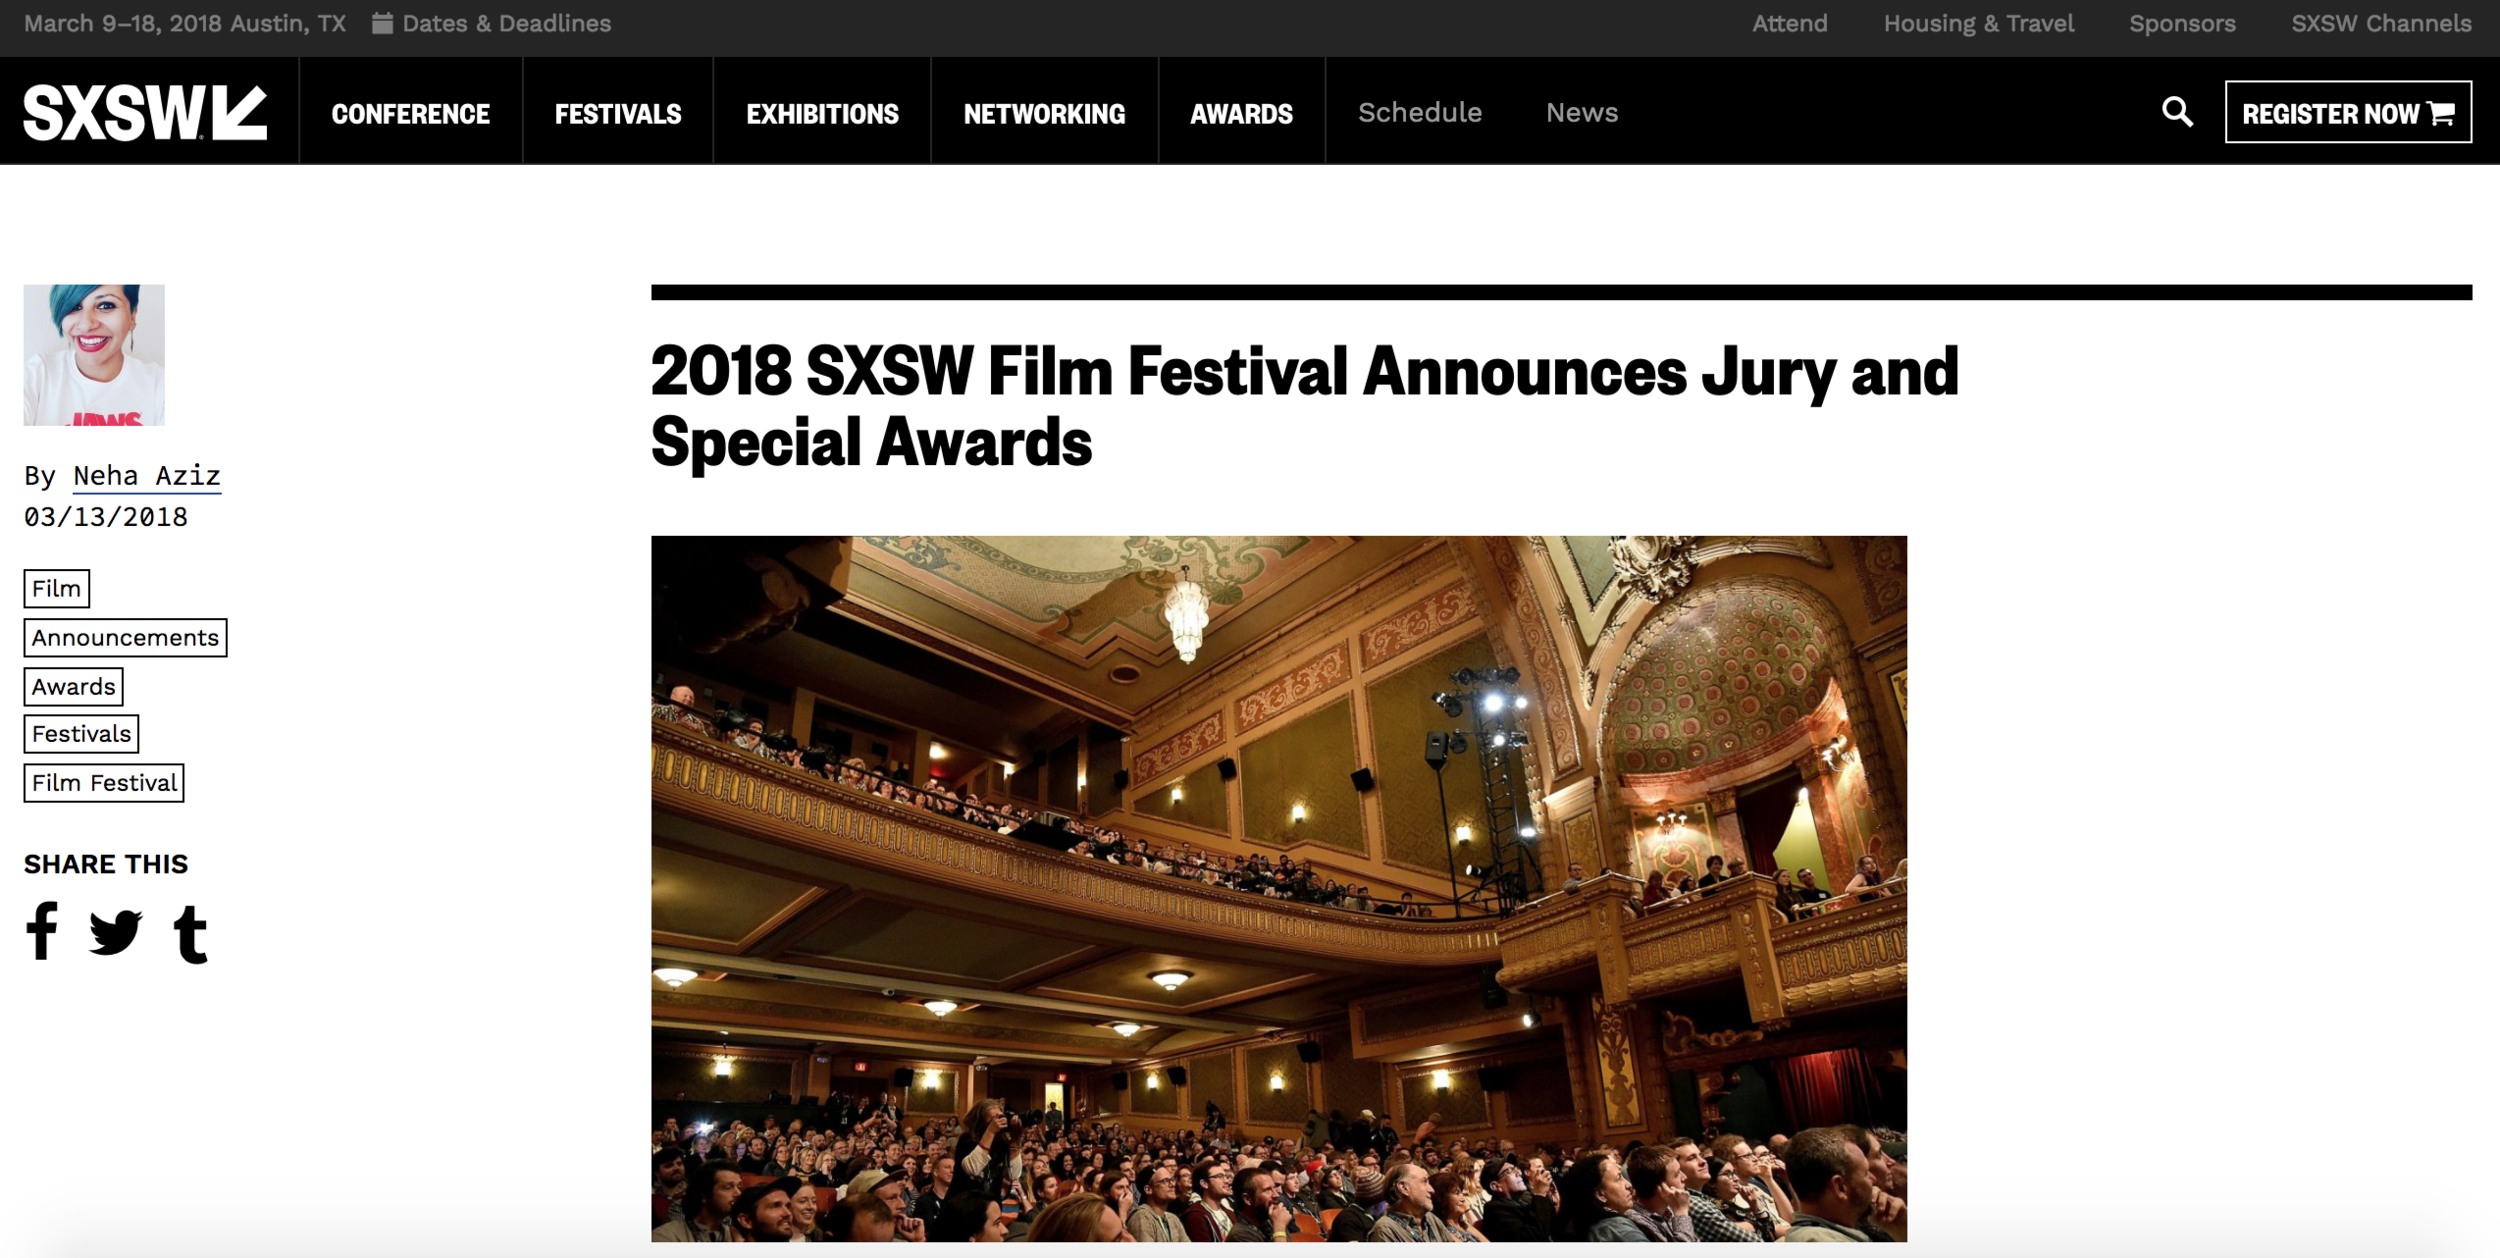 2018 SXSW Film Festival Announces Jury And Special Awards